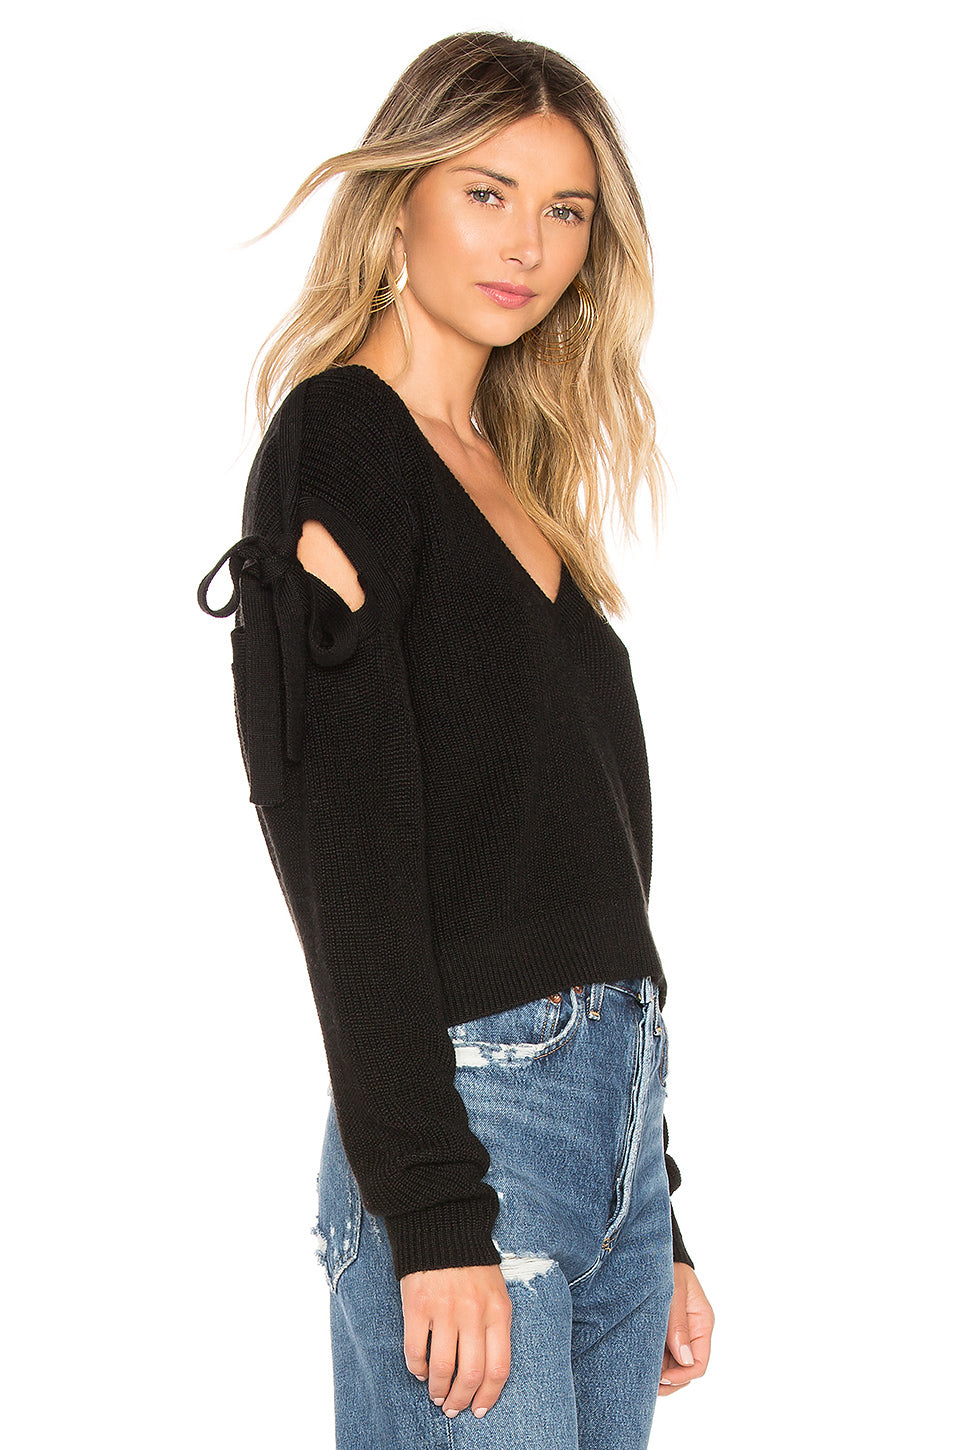 Matera Bow Sweater